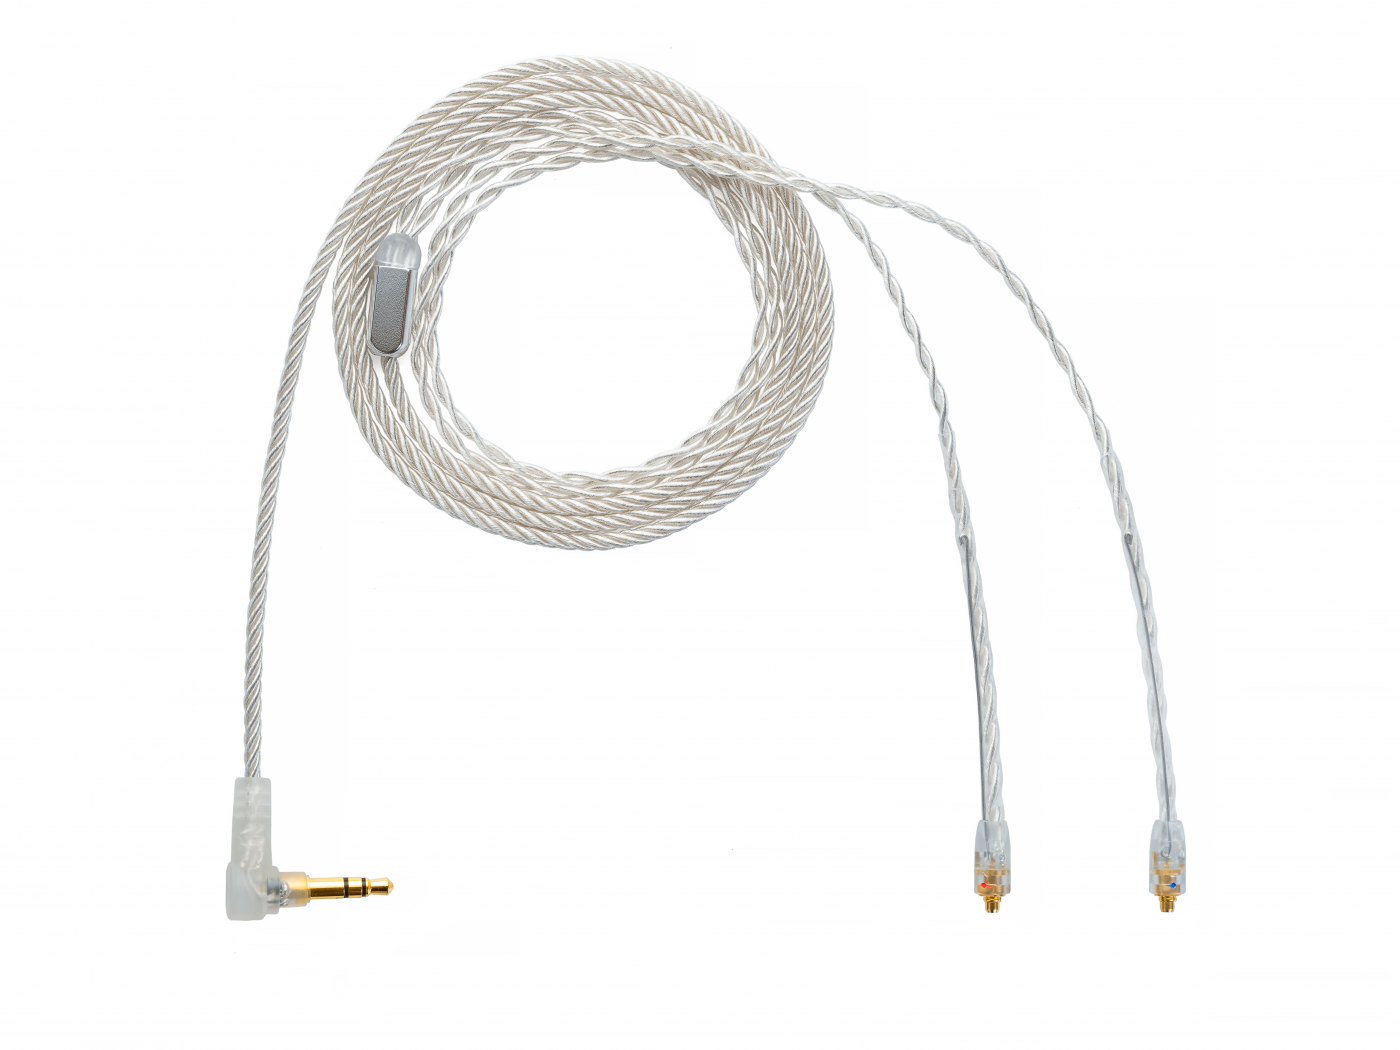 Super Litz Cable (Solaris)